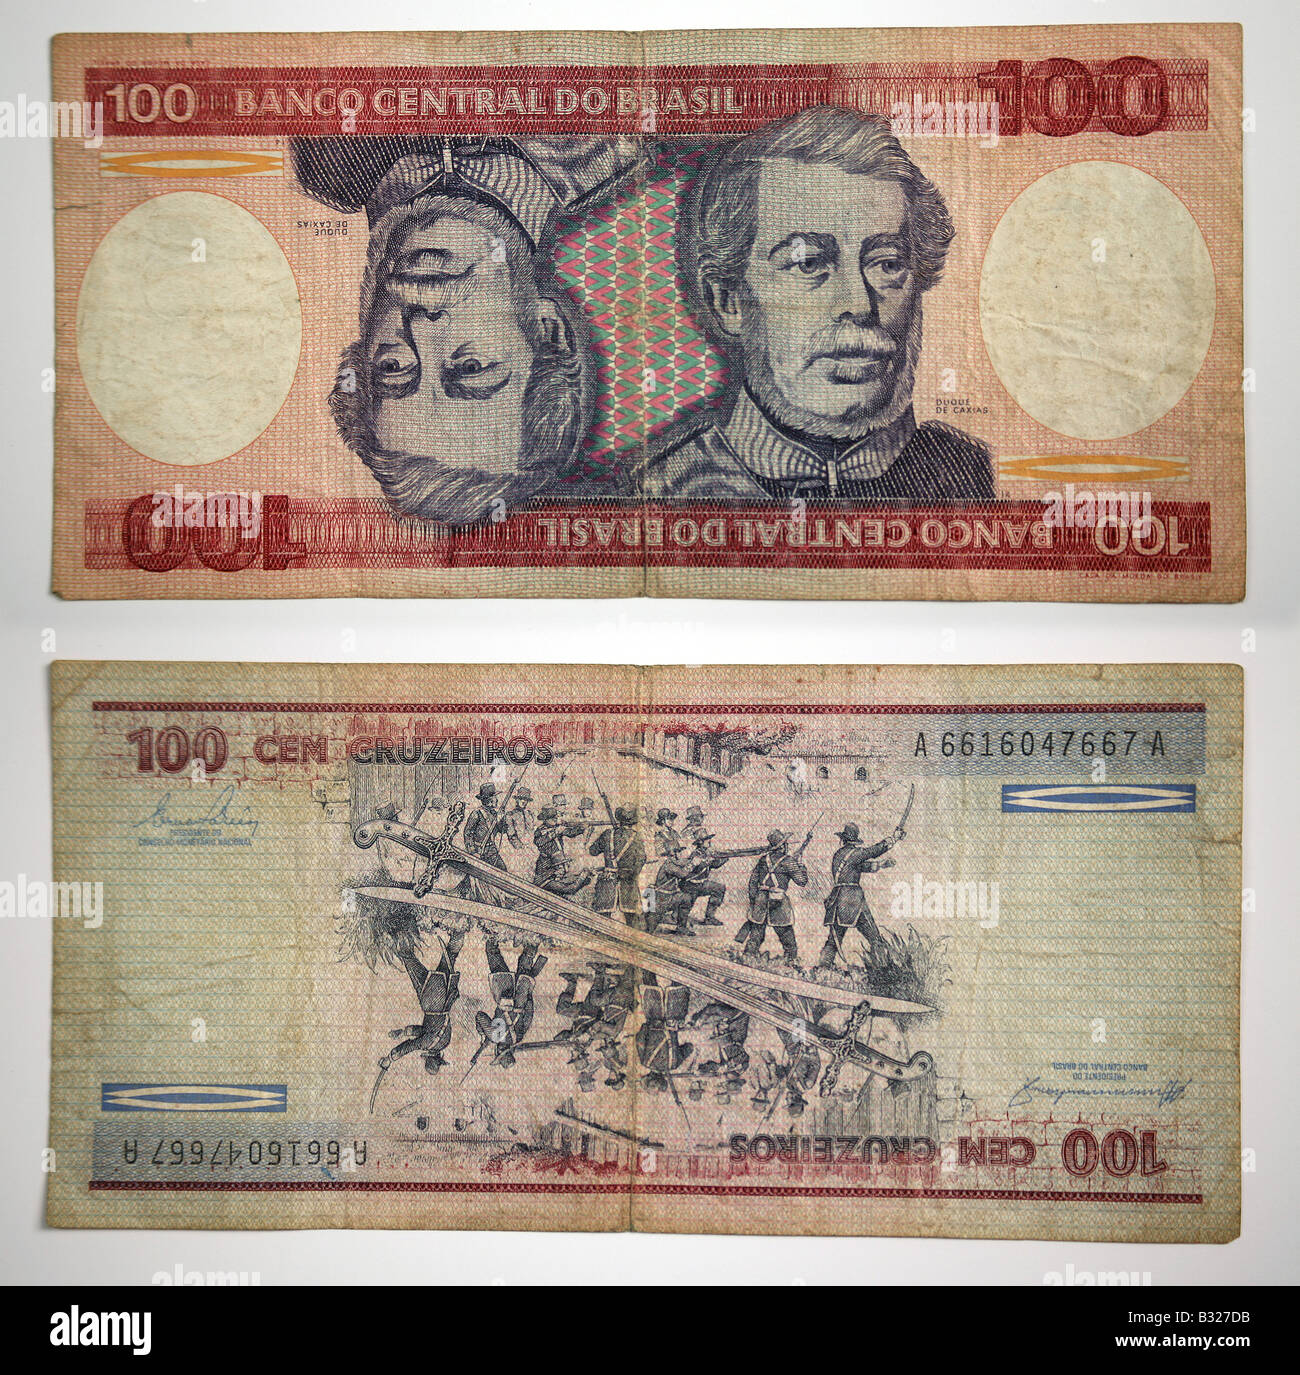 Brazilian Currency 100 Banco Central Do Brasil Stock Photo, Royalty Free Image: 19104103 - Alamy